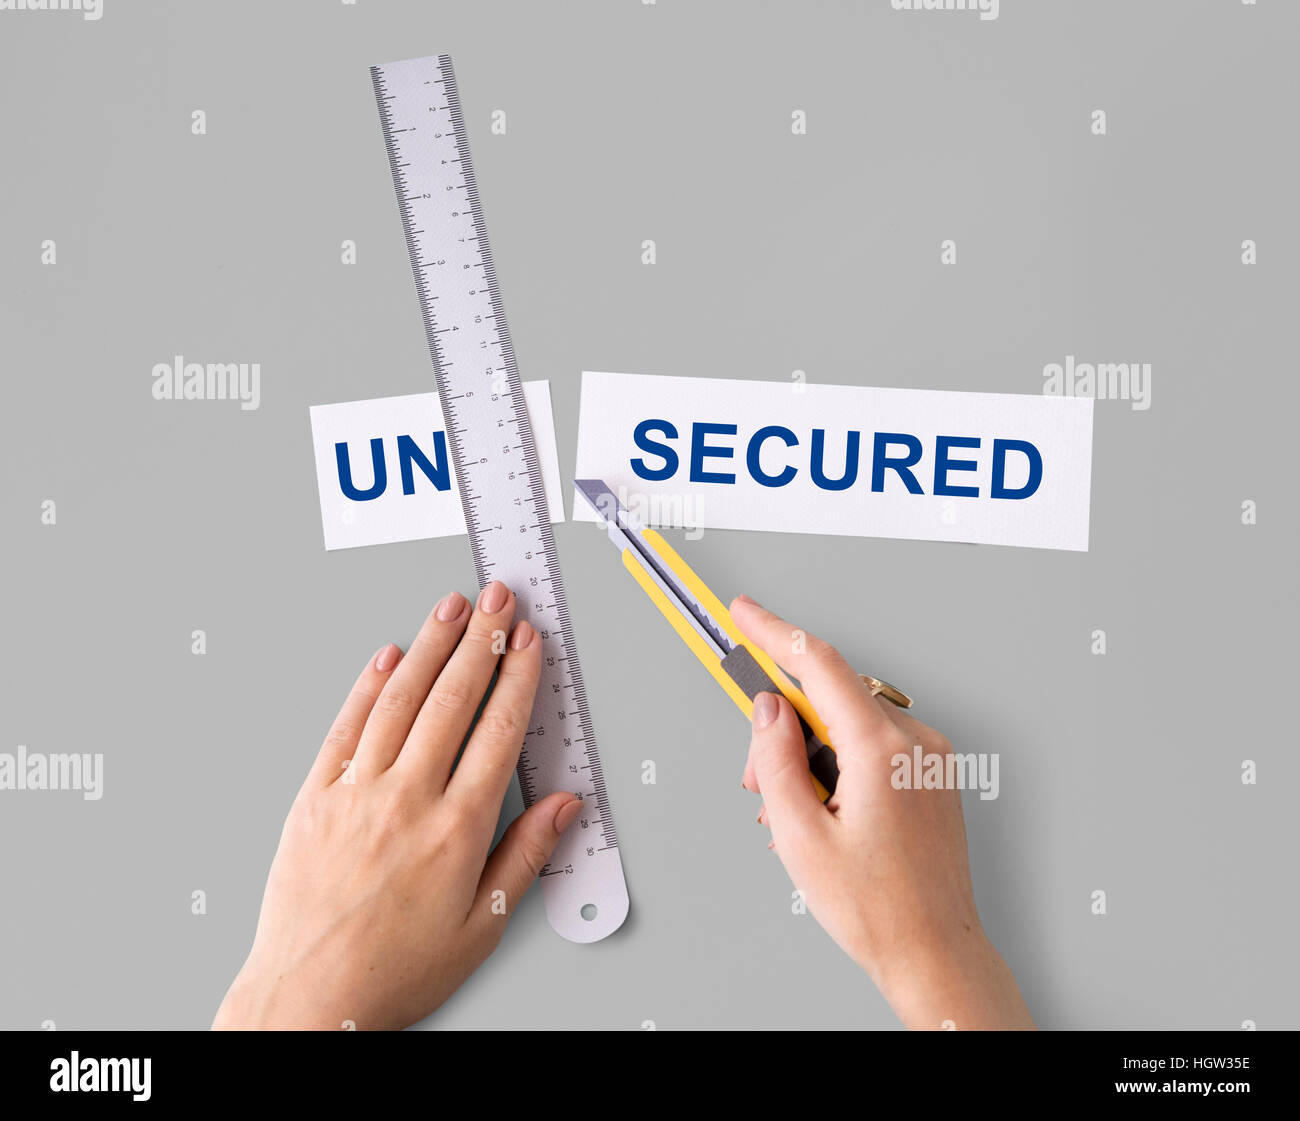 Unsecured Insecure Hand Cut Word Split Concept - Stock Image